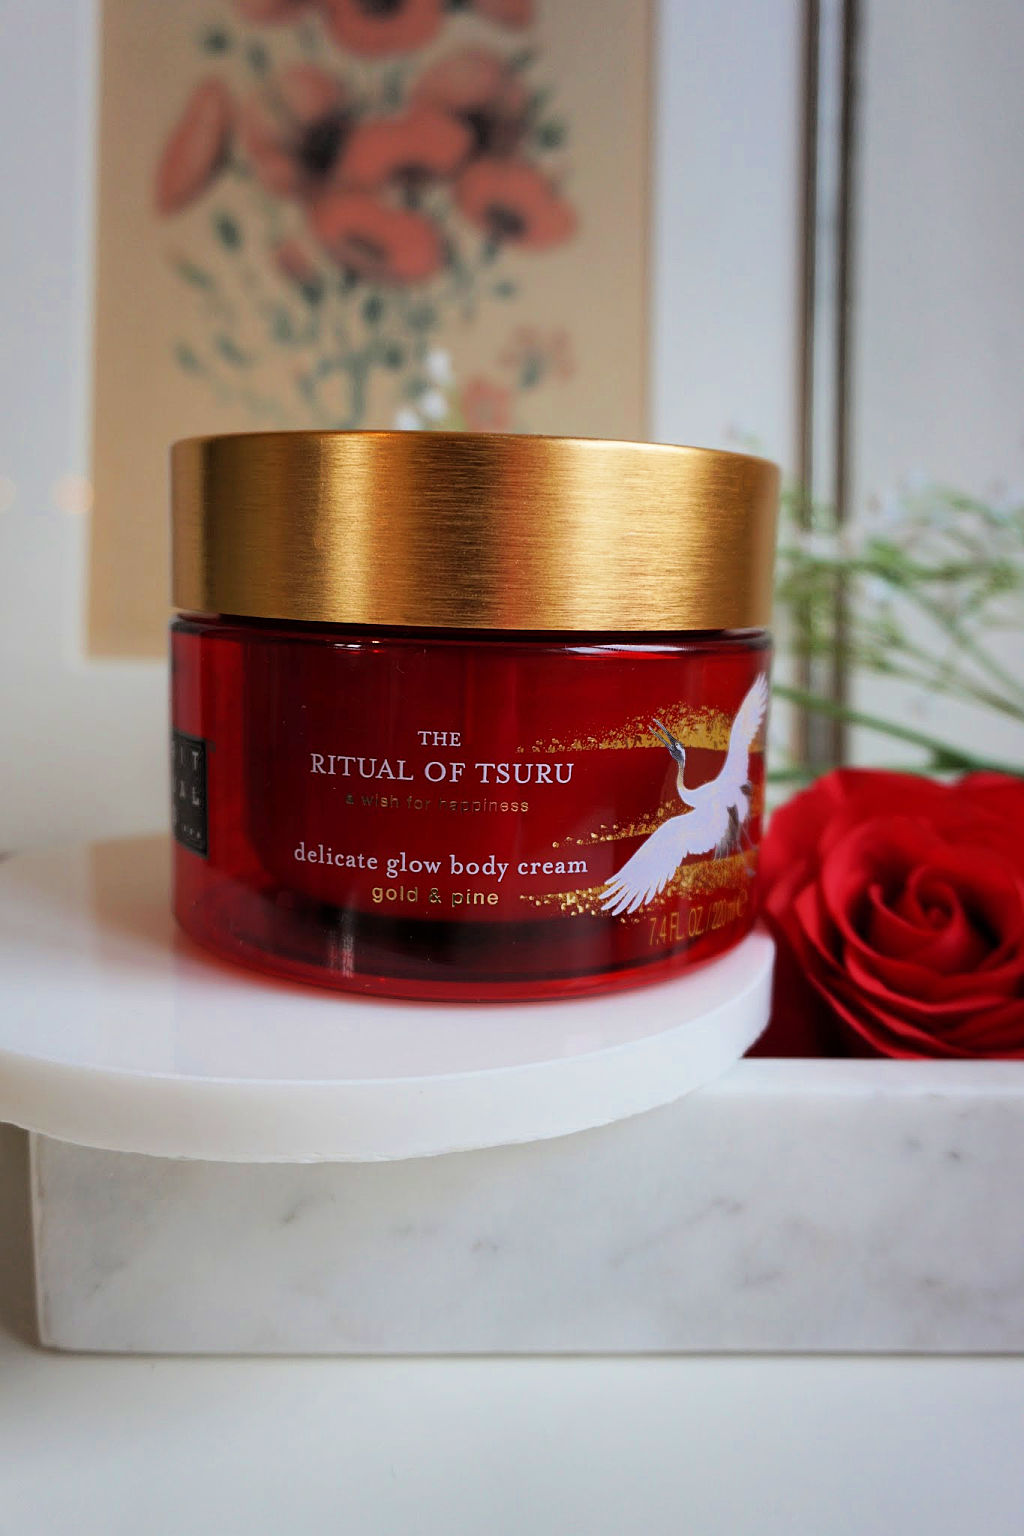 Rituals The Ritual of Tsuru Body Cream Review